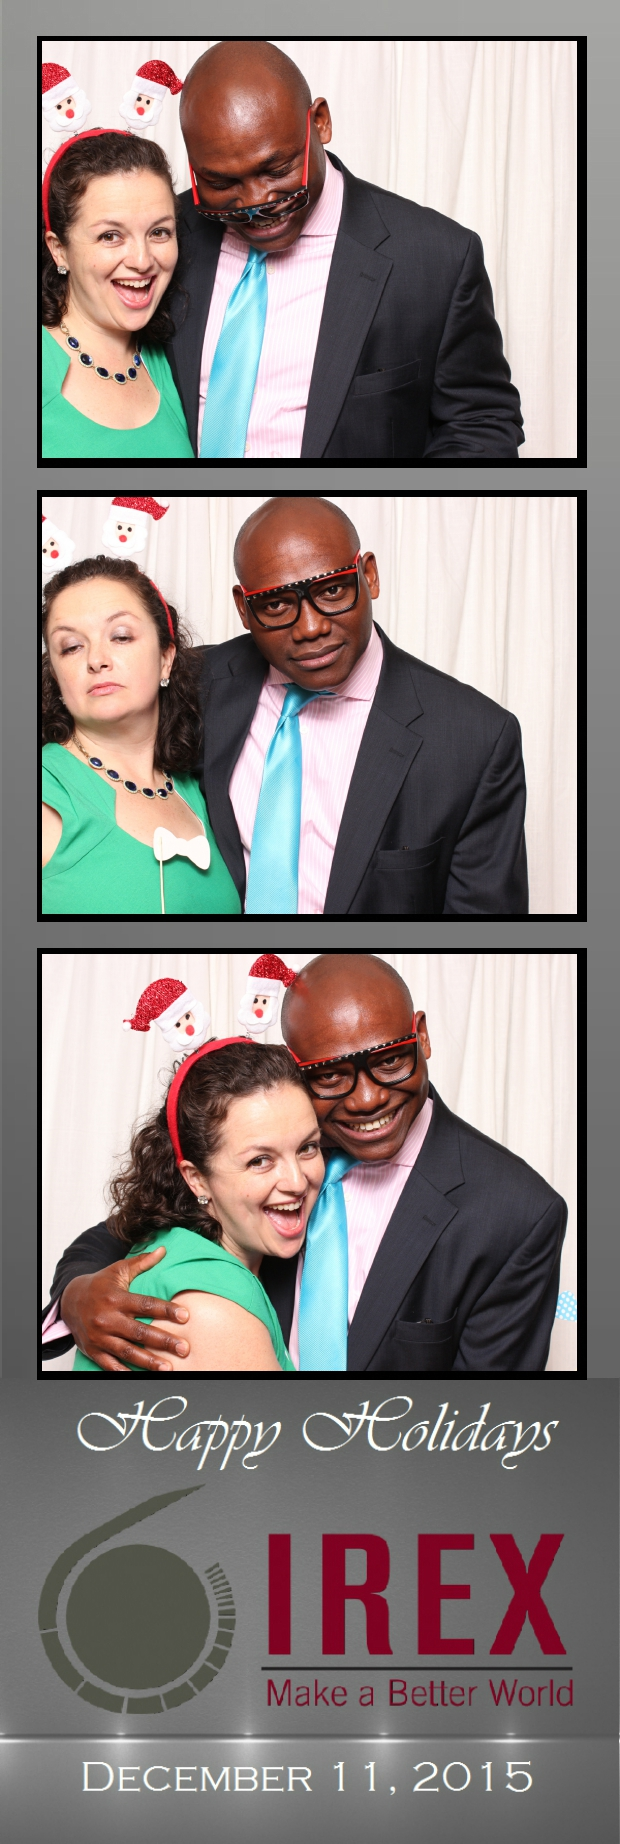 Guest House Events Photo Booth Strips IREX (64).jpg